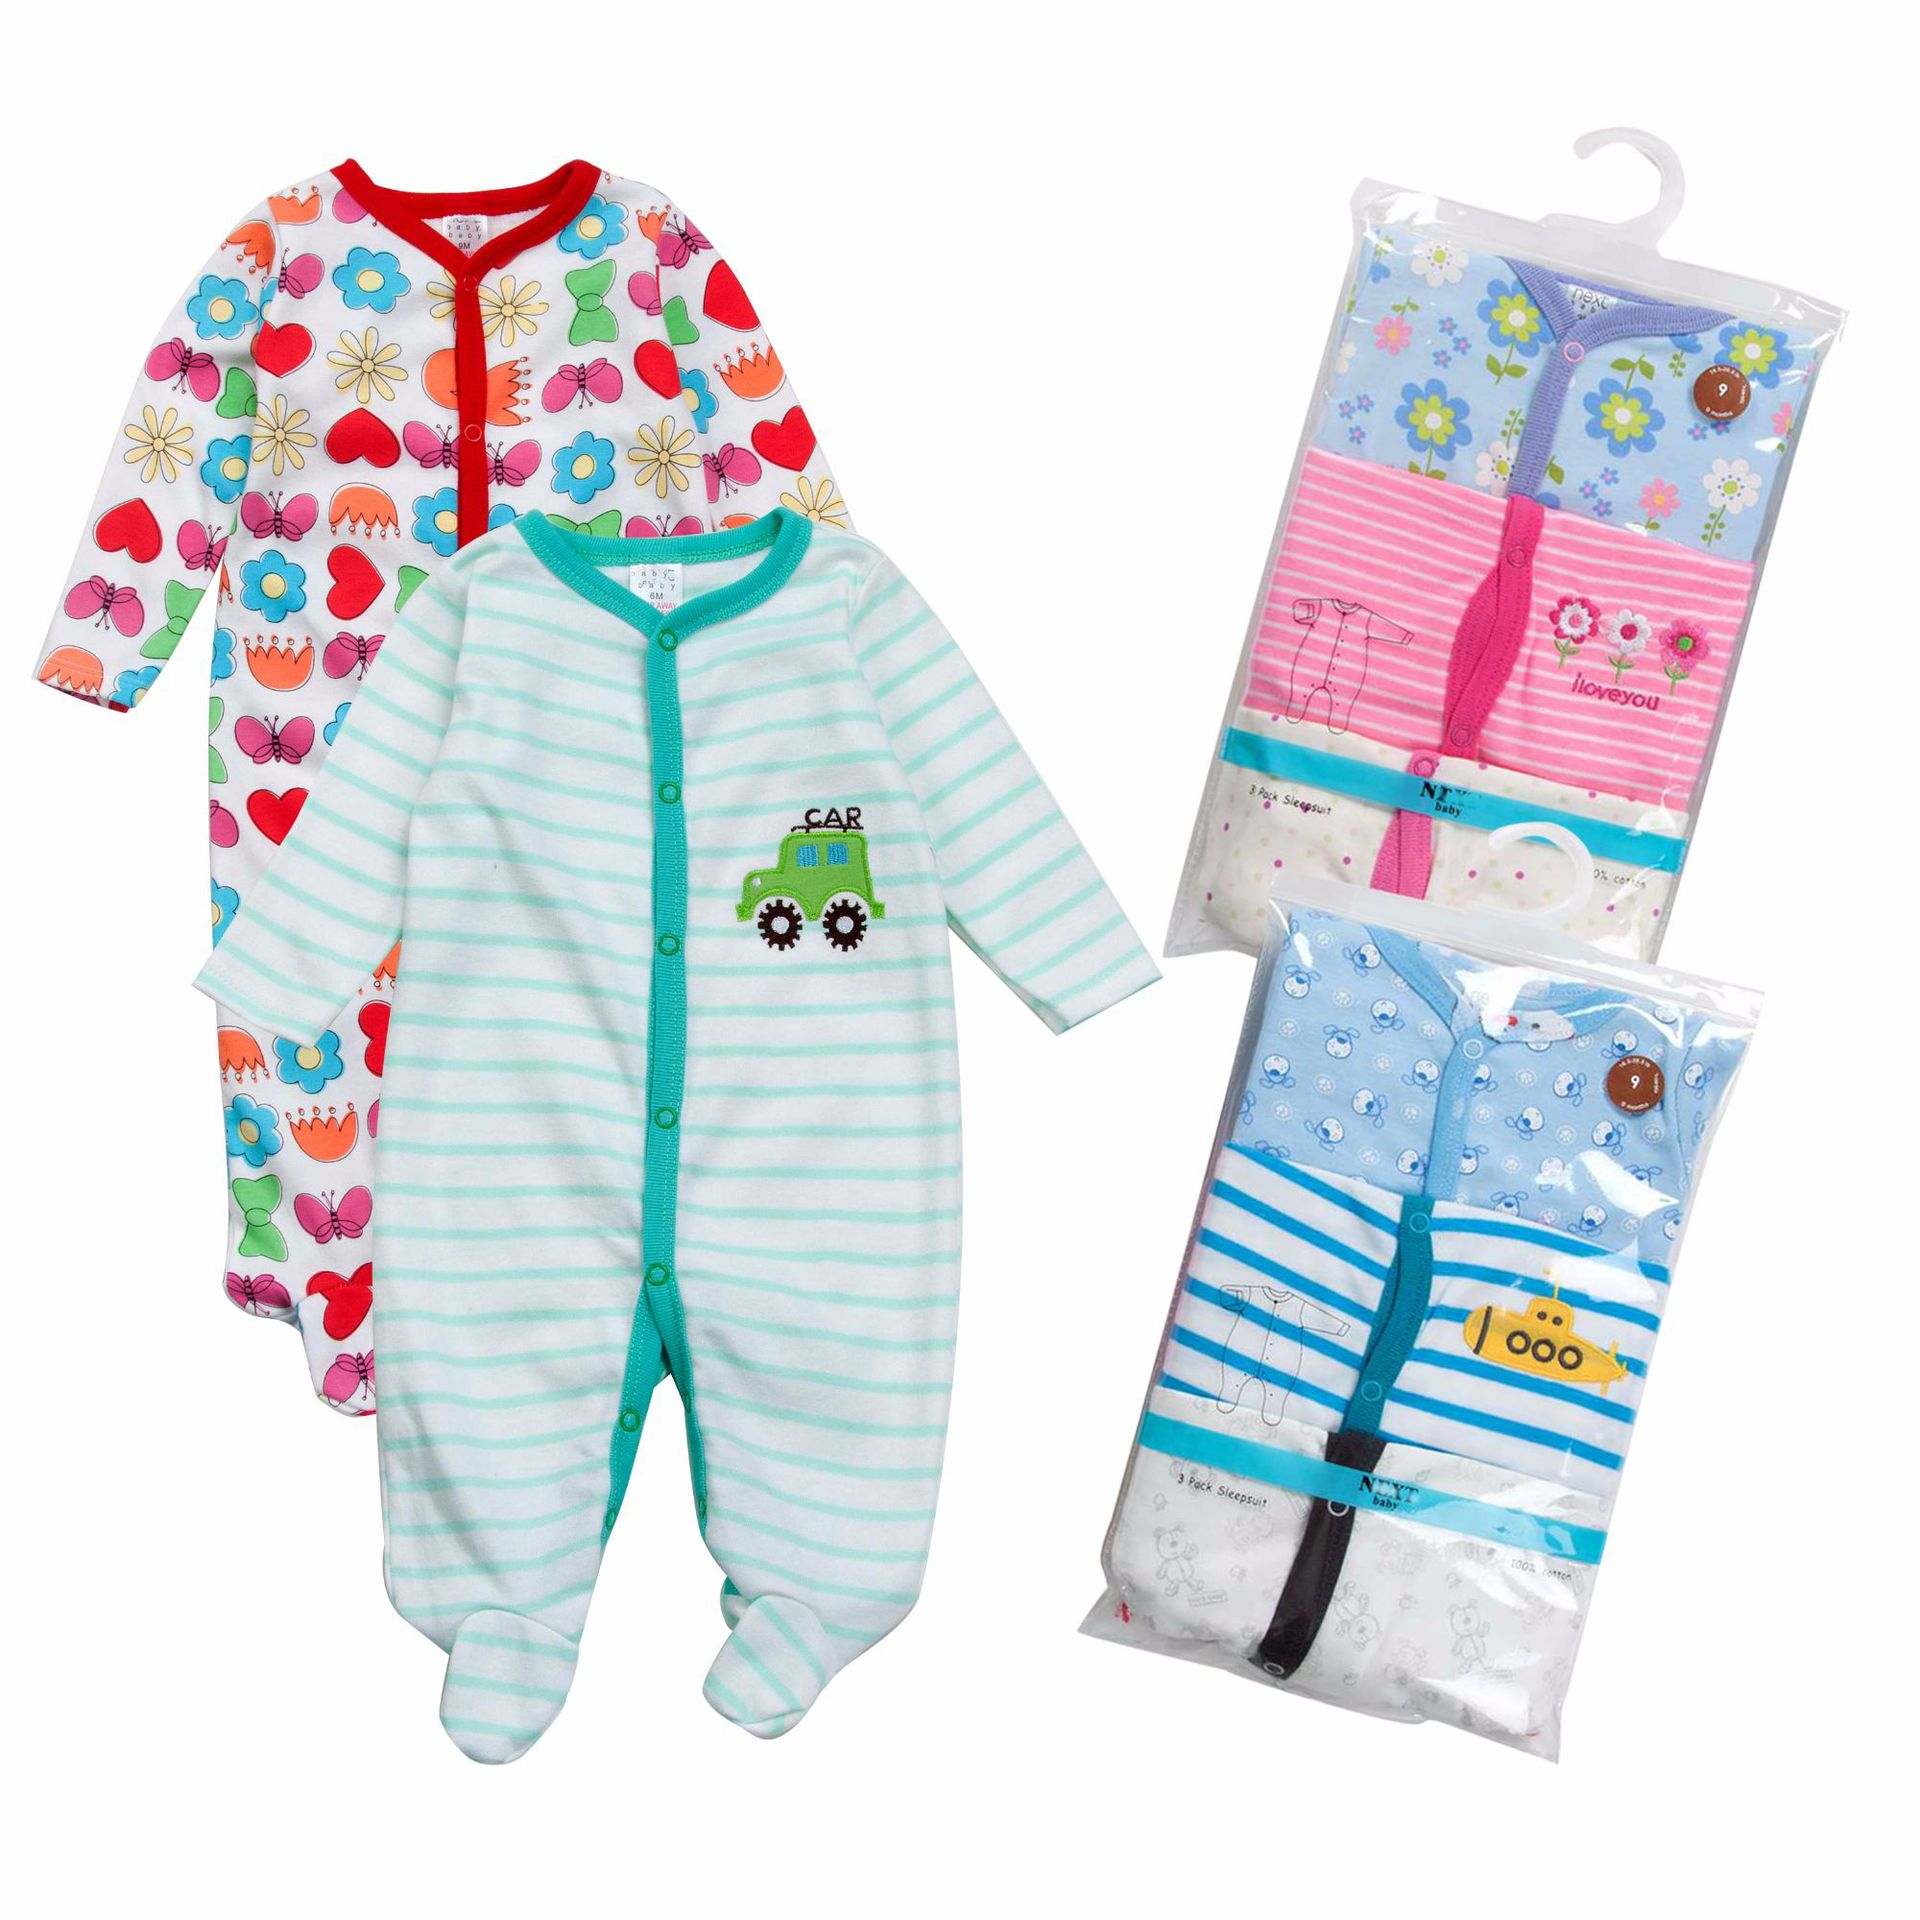 Carter Newborns Foot-closed Crawling Clothes Pure Cotton Romper Baby Onesie Infant Childrenswear Autumn